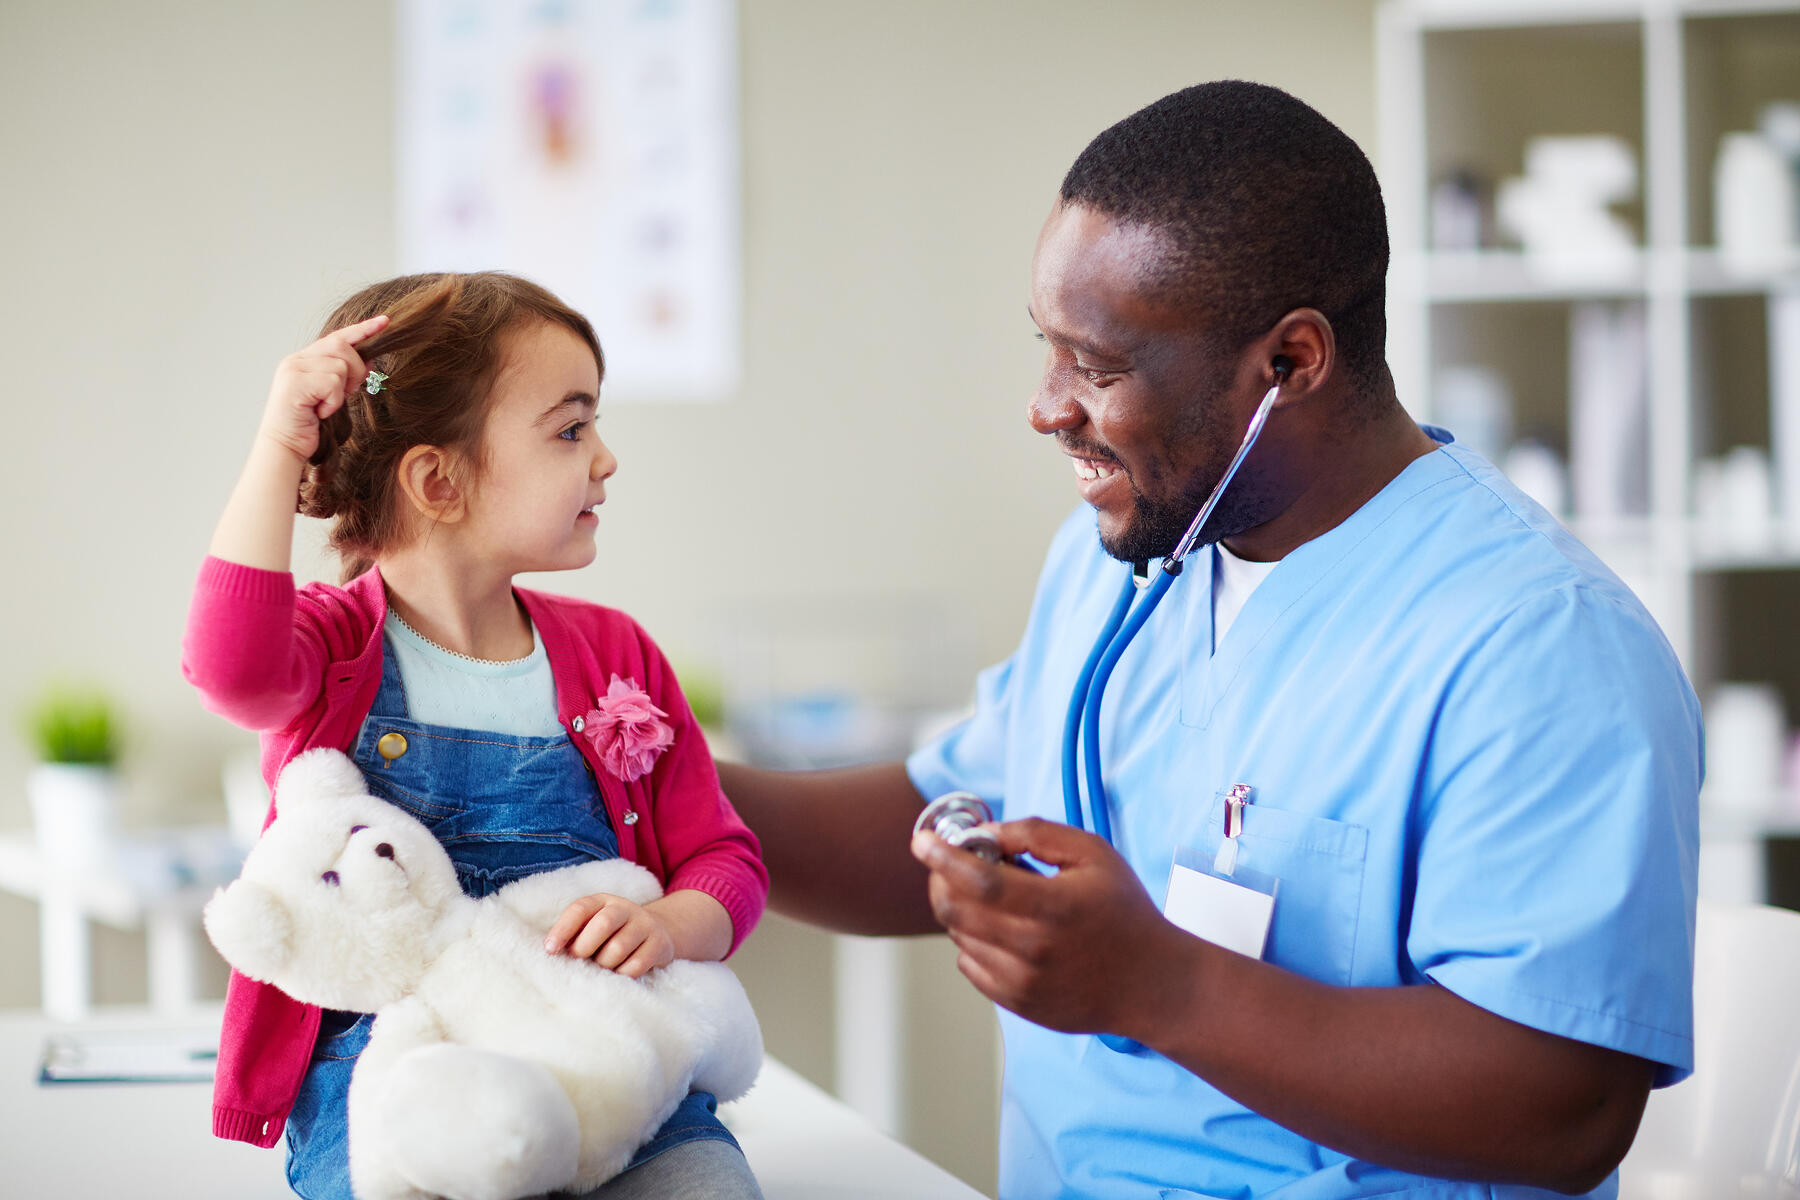 Doctor meets with young female patient